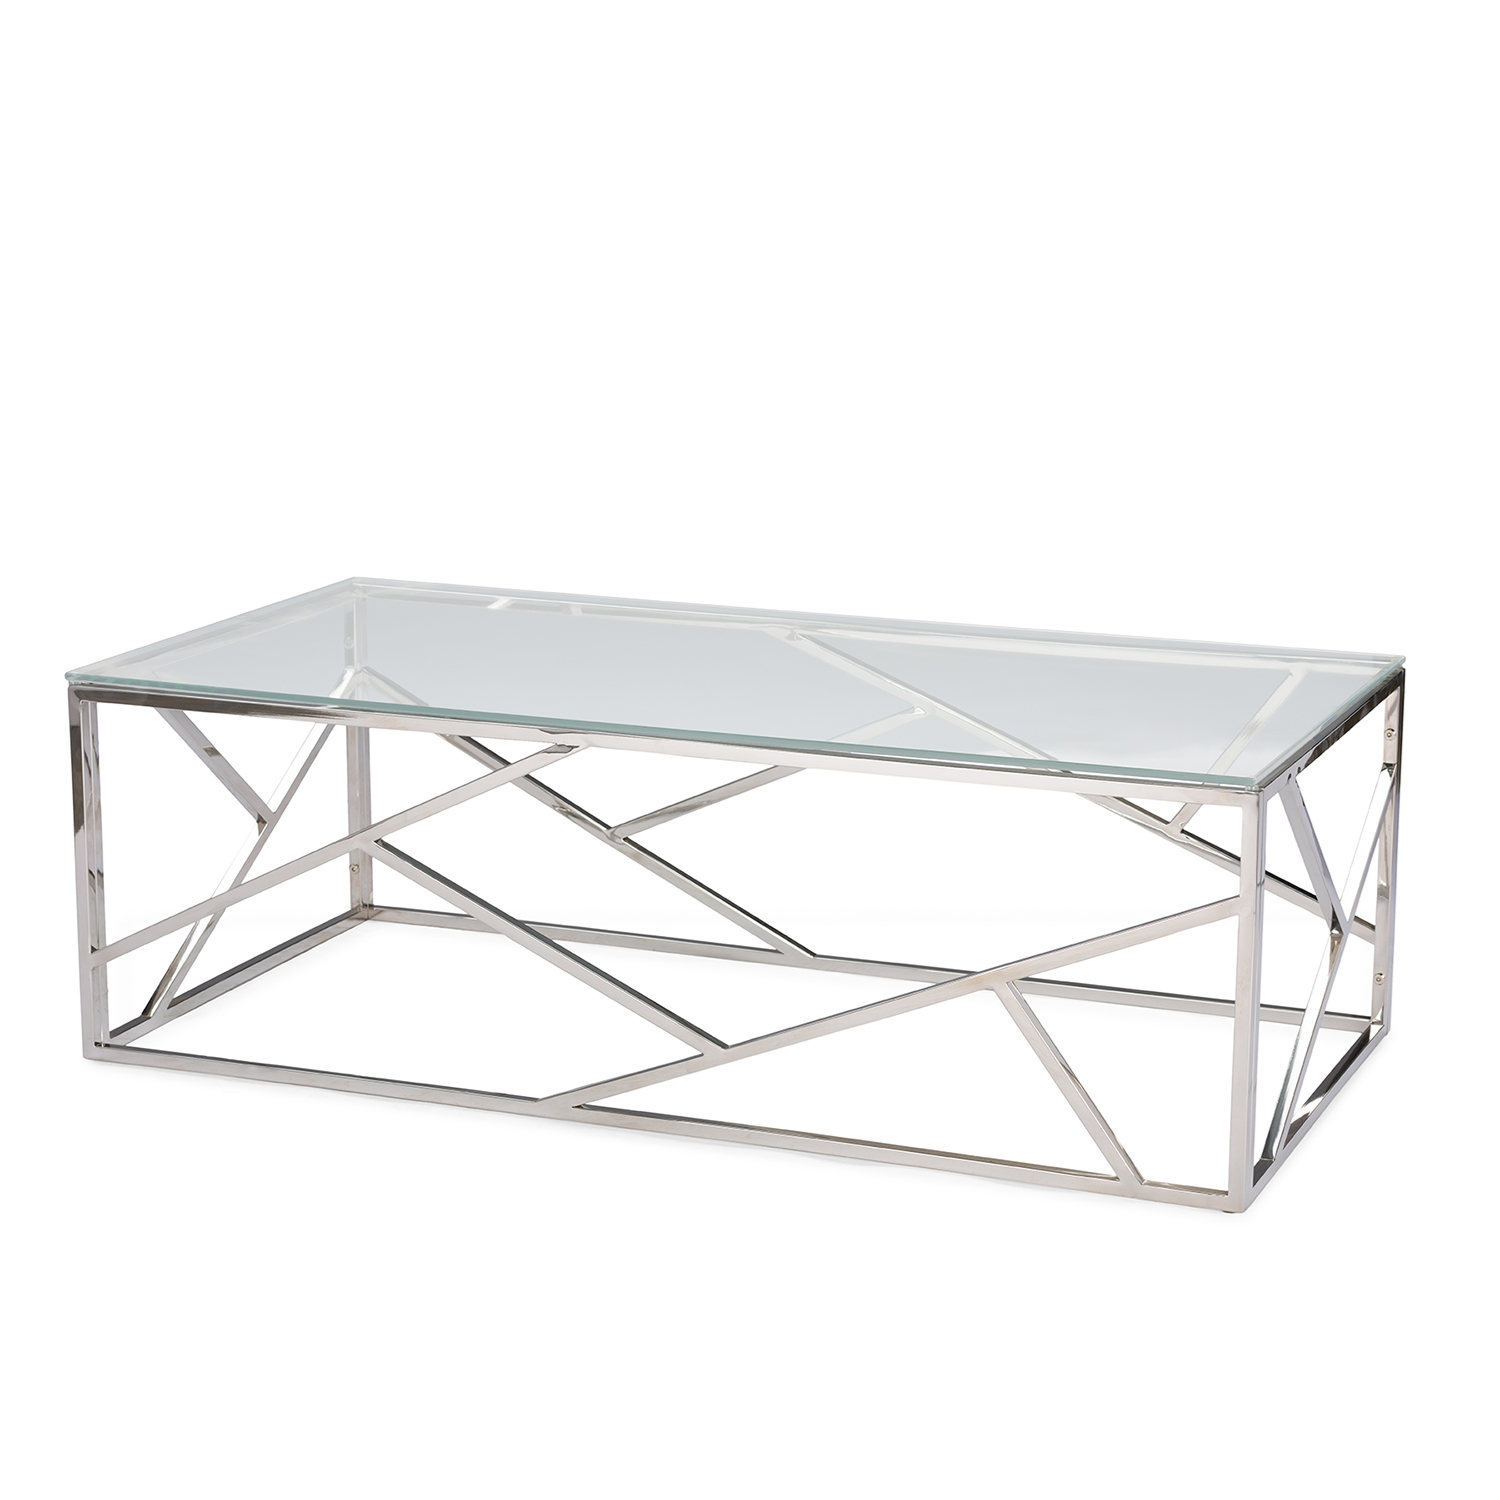 ... Baxton Studio Fiona Modern And Contemporary Stainless Steel Coffee Table  With Tempered Glass Top   IEGY ...